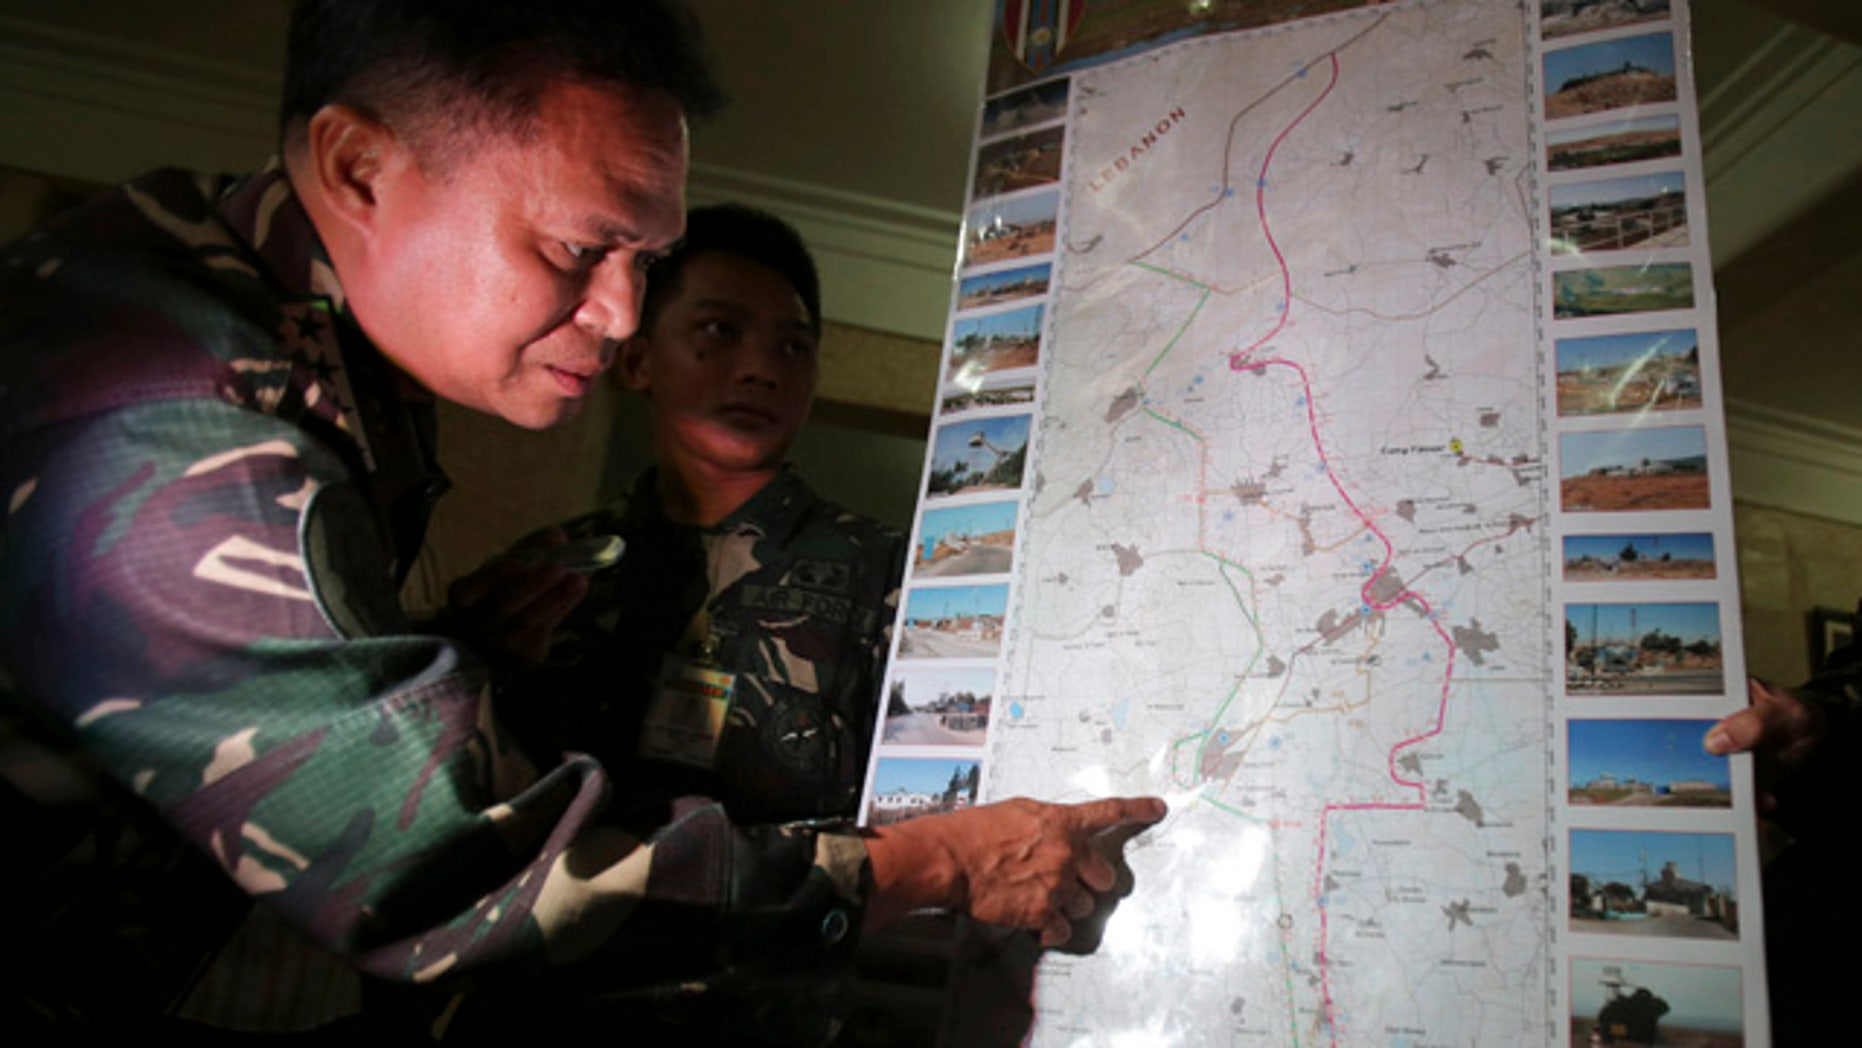 August 31, 2014: Philippine military chief Gen. Gregorio Pio Catapang shows reporters where Filipino peacekeepers in Golan Heights have been repositioned during a press conference at Camp Aguinaldo military headquarters in suburban Quezon city, Philippines. Catapang said more than 70 Filipino peacekeepers have escaped from two areas in the Golan Heights that came under attack by Syrian rebels. (AP Photo/Aaron Favila)